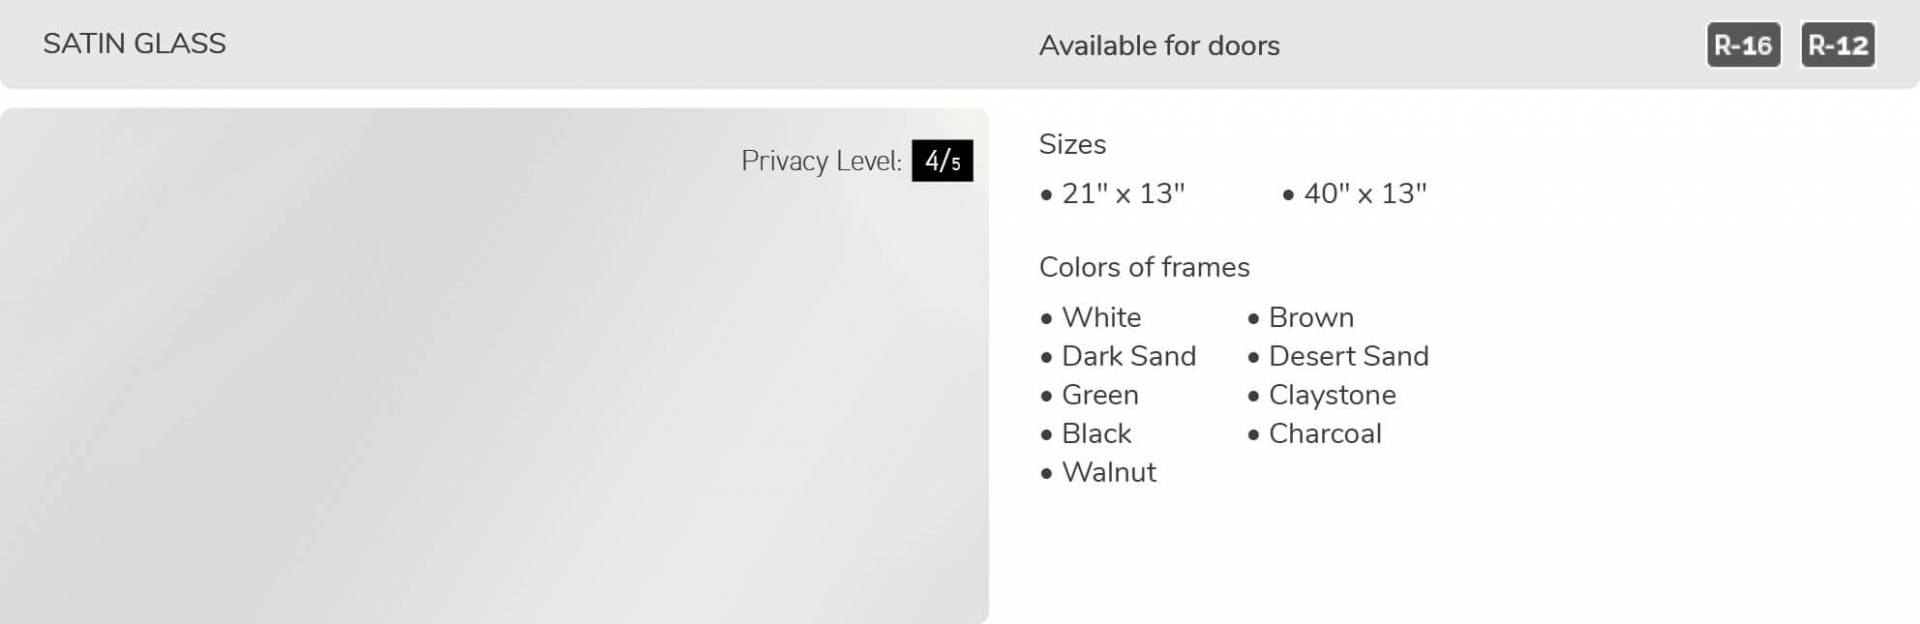 Satin glass, 21' x 13' and 40' x 13', available for door R-16 and R-12